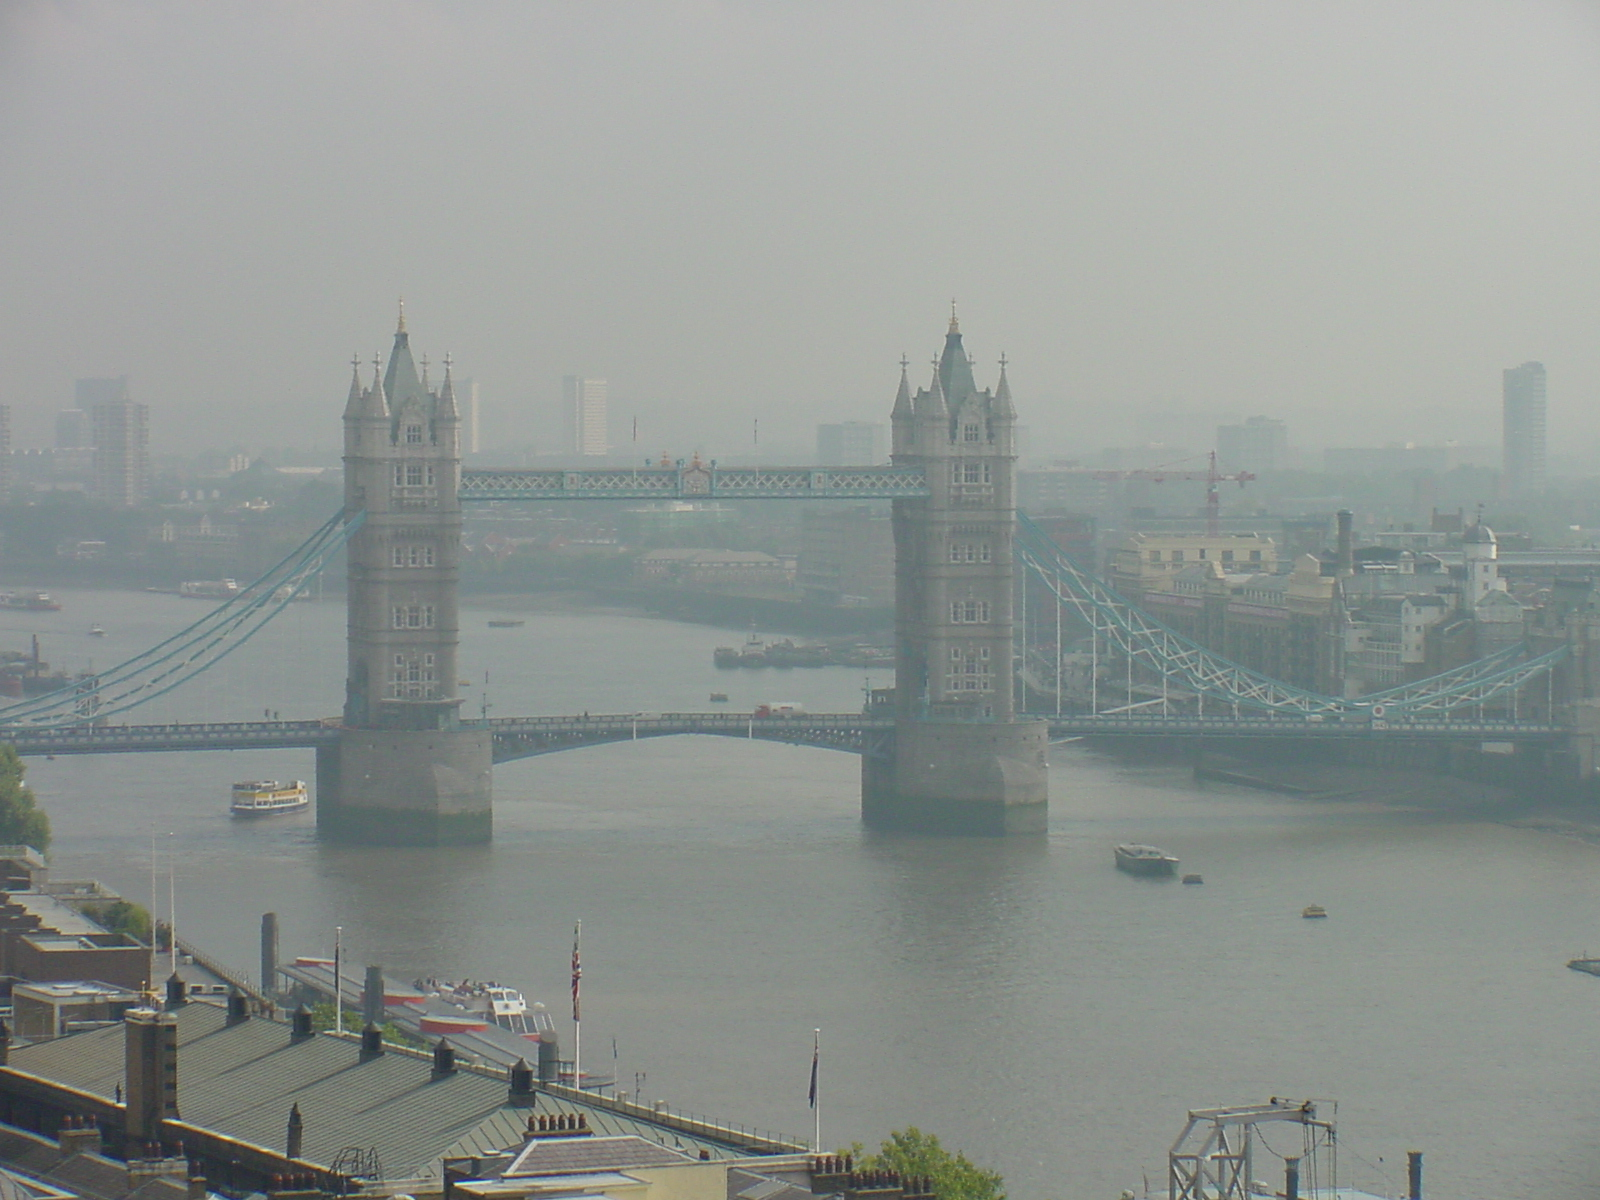 (Earth Views): England London The City the Monument hazy view of Tower Bridge from viewing gallery 1 MB.jpg. D=2001-11-10 [Nov 10, 2001]; S=765kB, ...